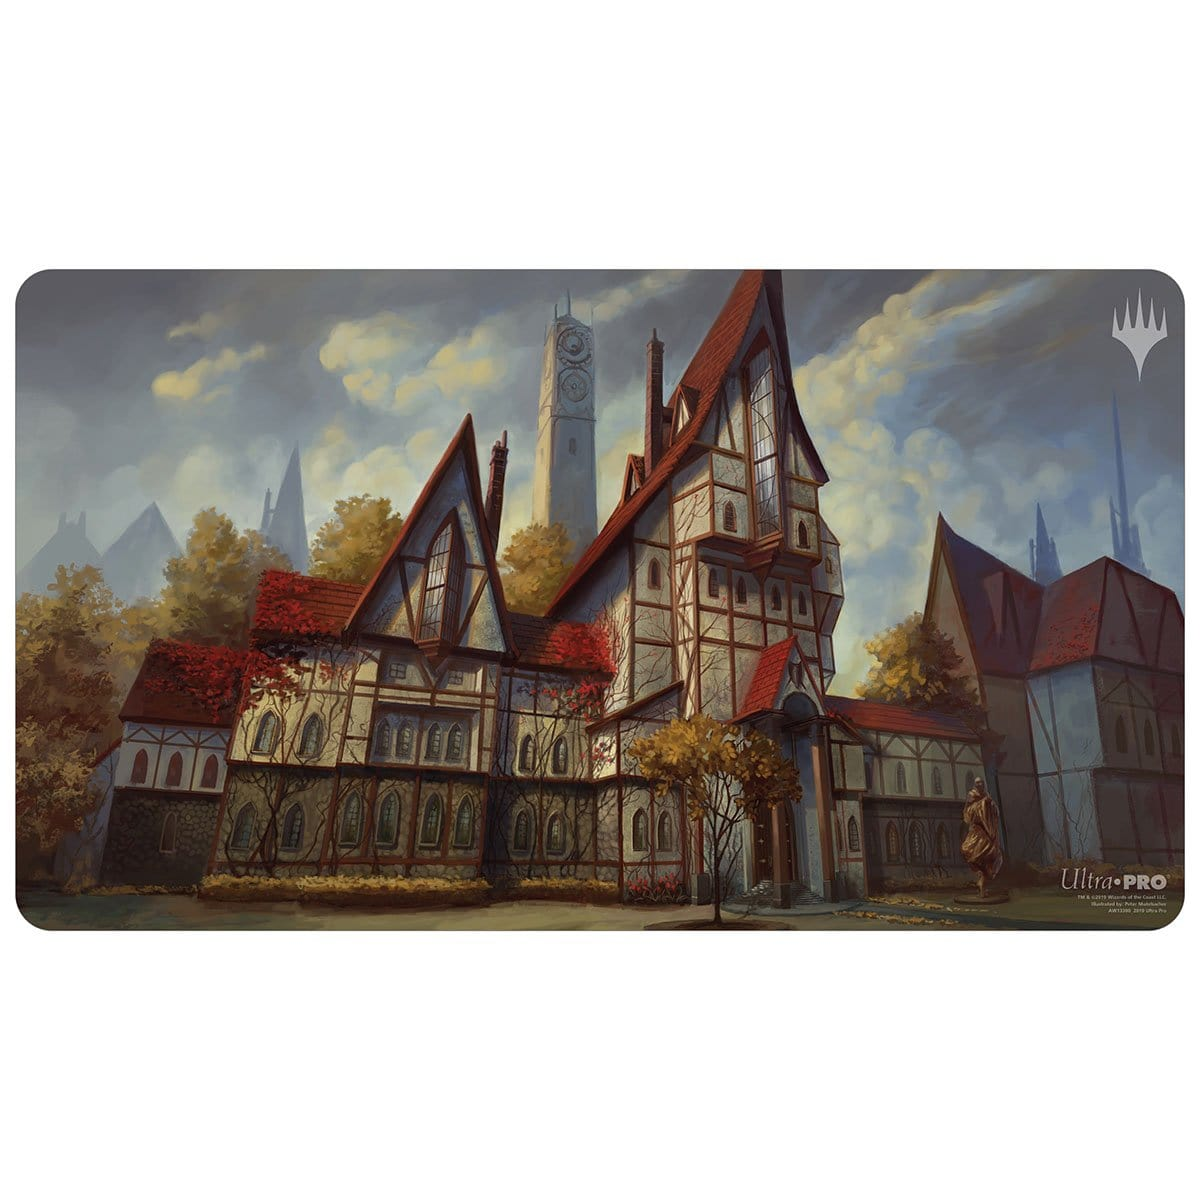 Gavony Township Playmat - Playmat - Original Magic Art - Accessories for Magic the Gathering and other card games